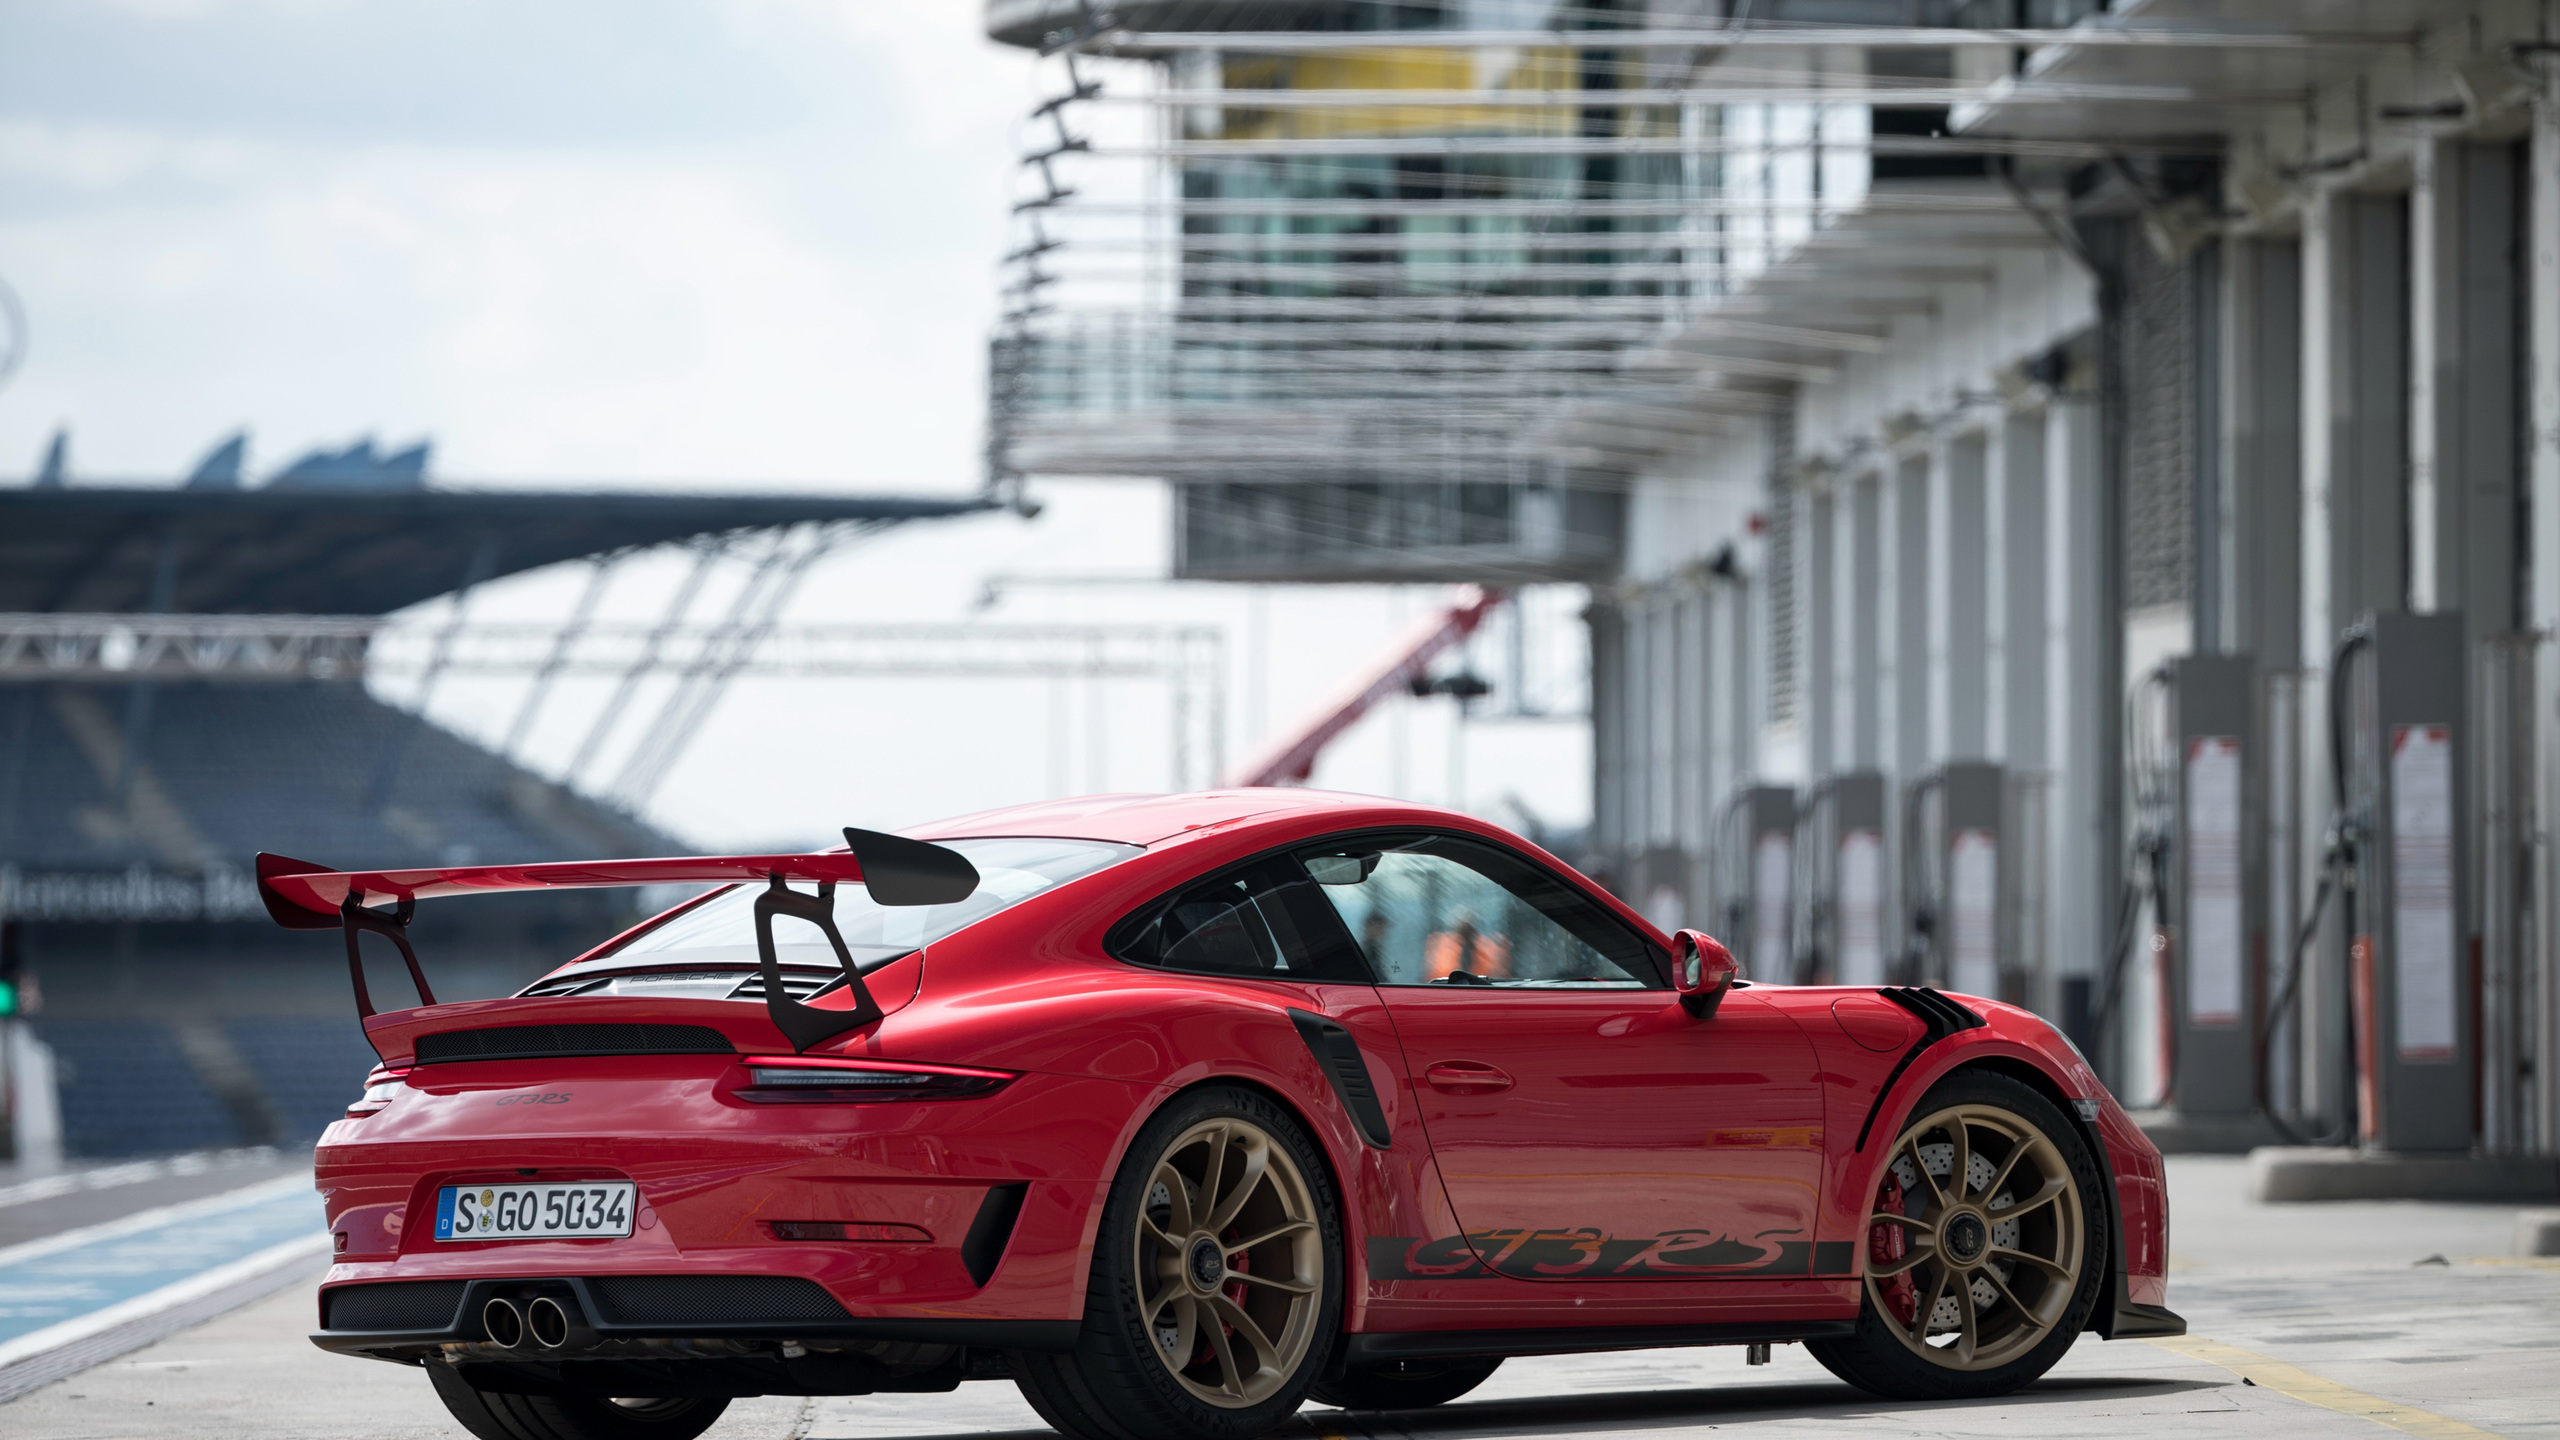 2560x1440 Porsche 911 Gt3 Rs 4k 1440p Resolution Hd 4k Wallpapers Images Backgrounds Photos And Pictures